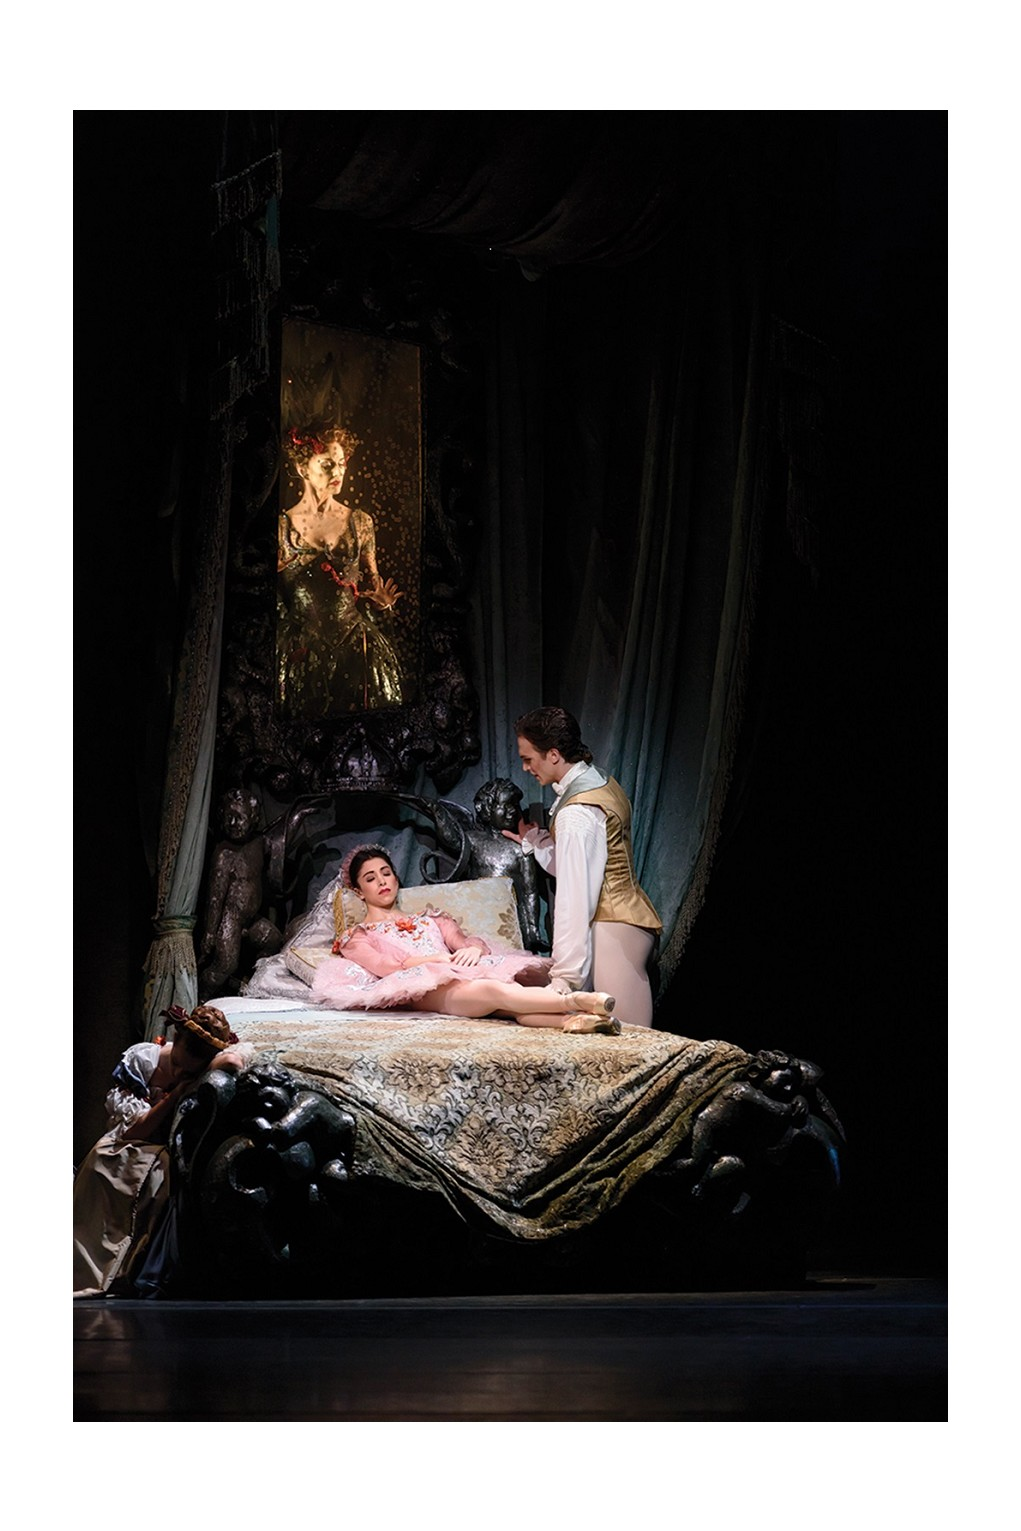 Sleeping Beauty - The Royal Opera House Live